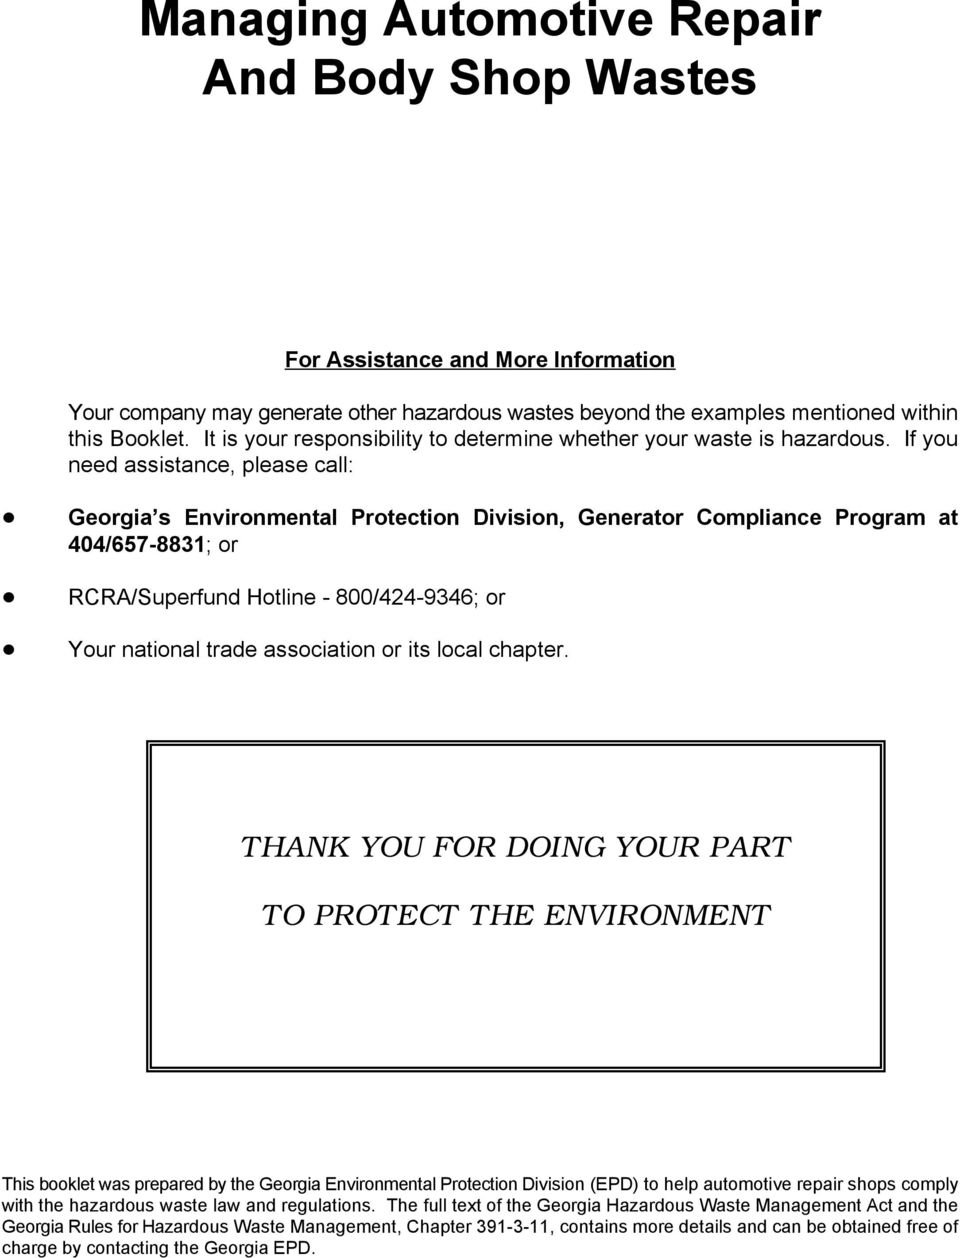 Georgia s Environmental Protection Division, Generator Compliance Program at 404/657-8831; or! RCRA/Superfund Hotline - 800/424-9346; or! Your national trade association or its local chapter.